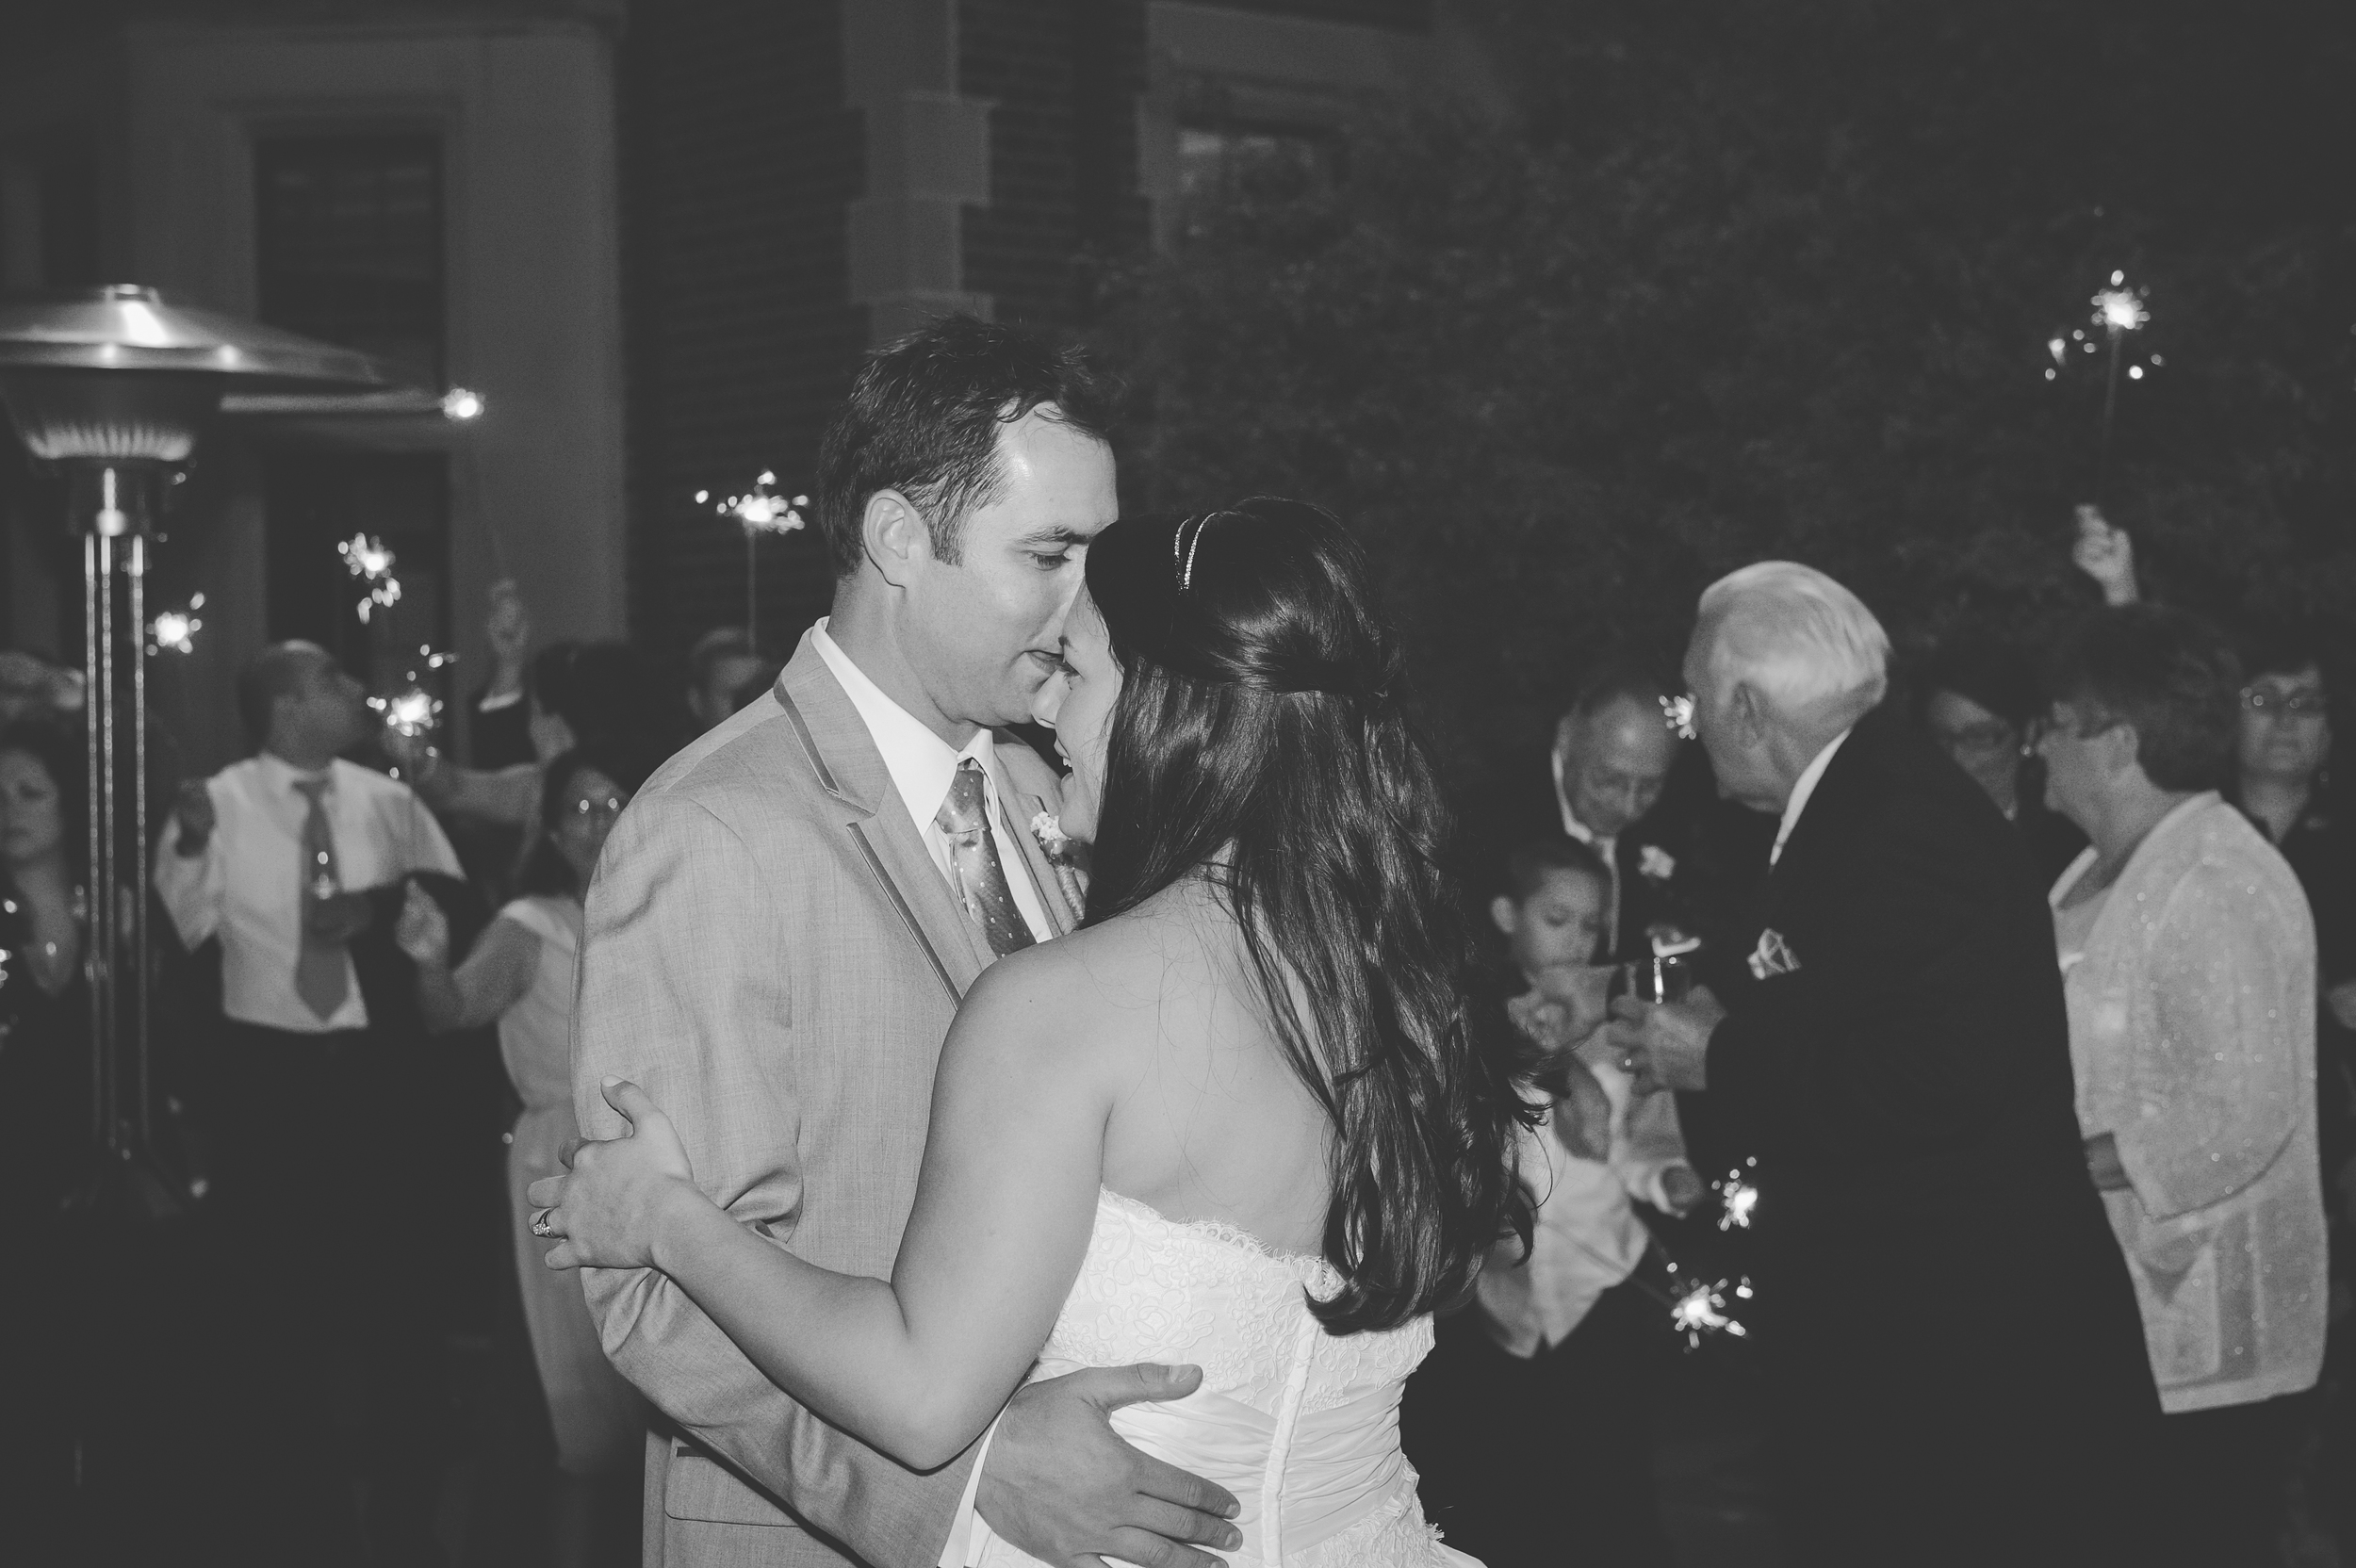 waveny_house_wedding_New_canaan_CT_Amy_Champagne_Events1067.jpg